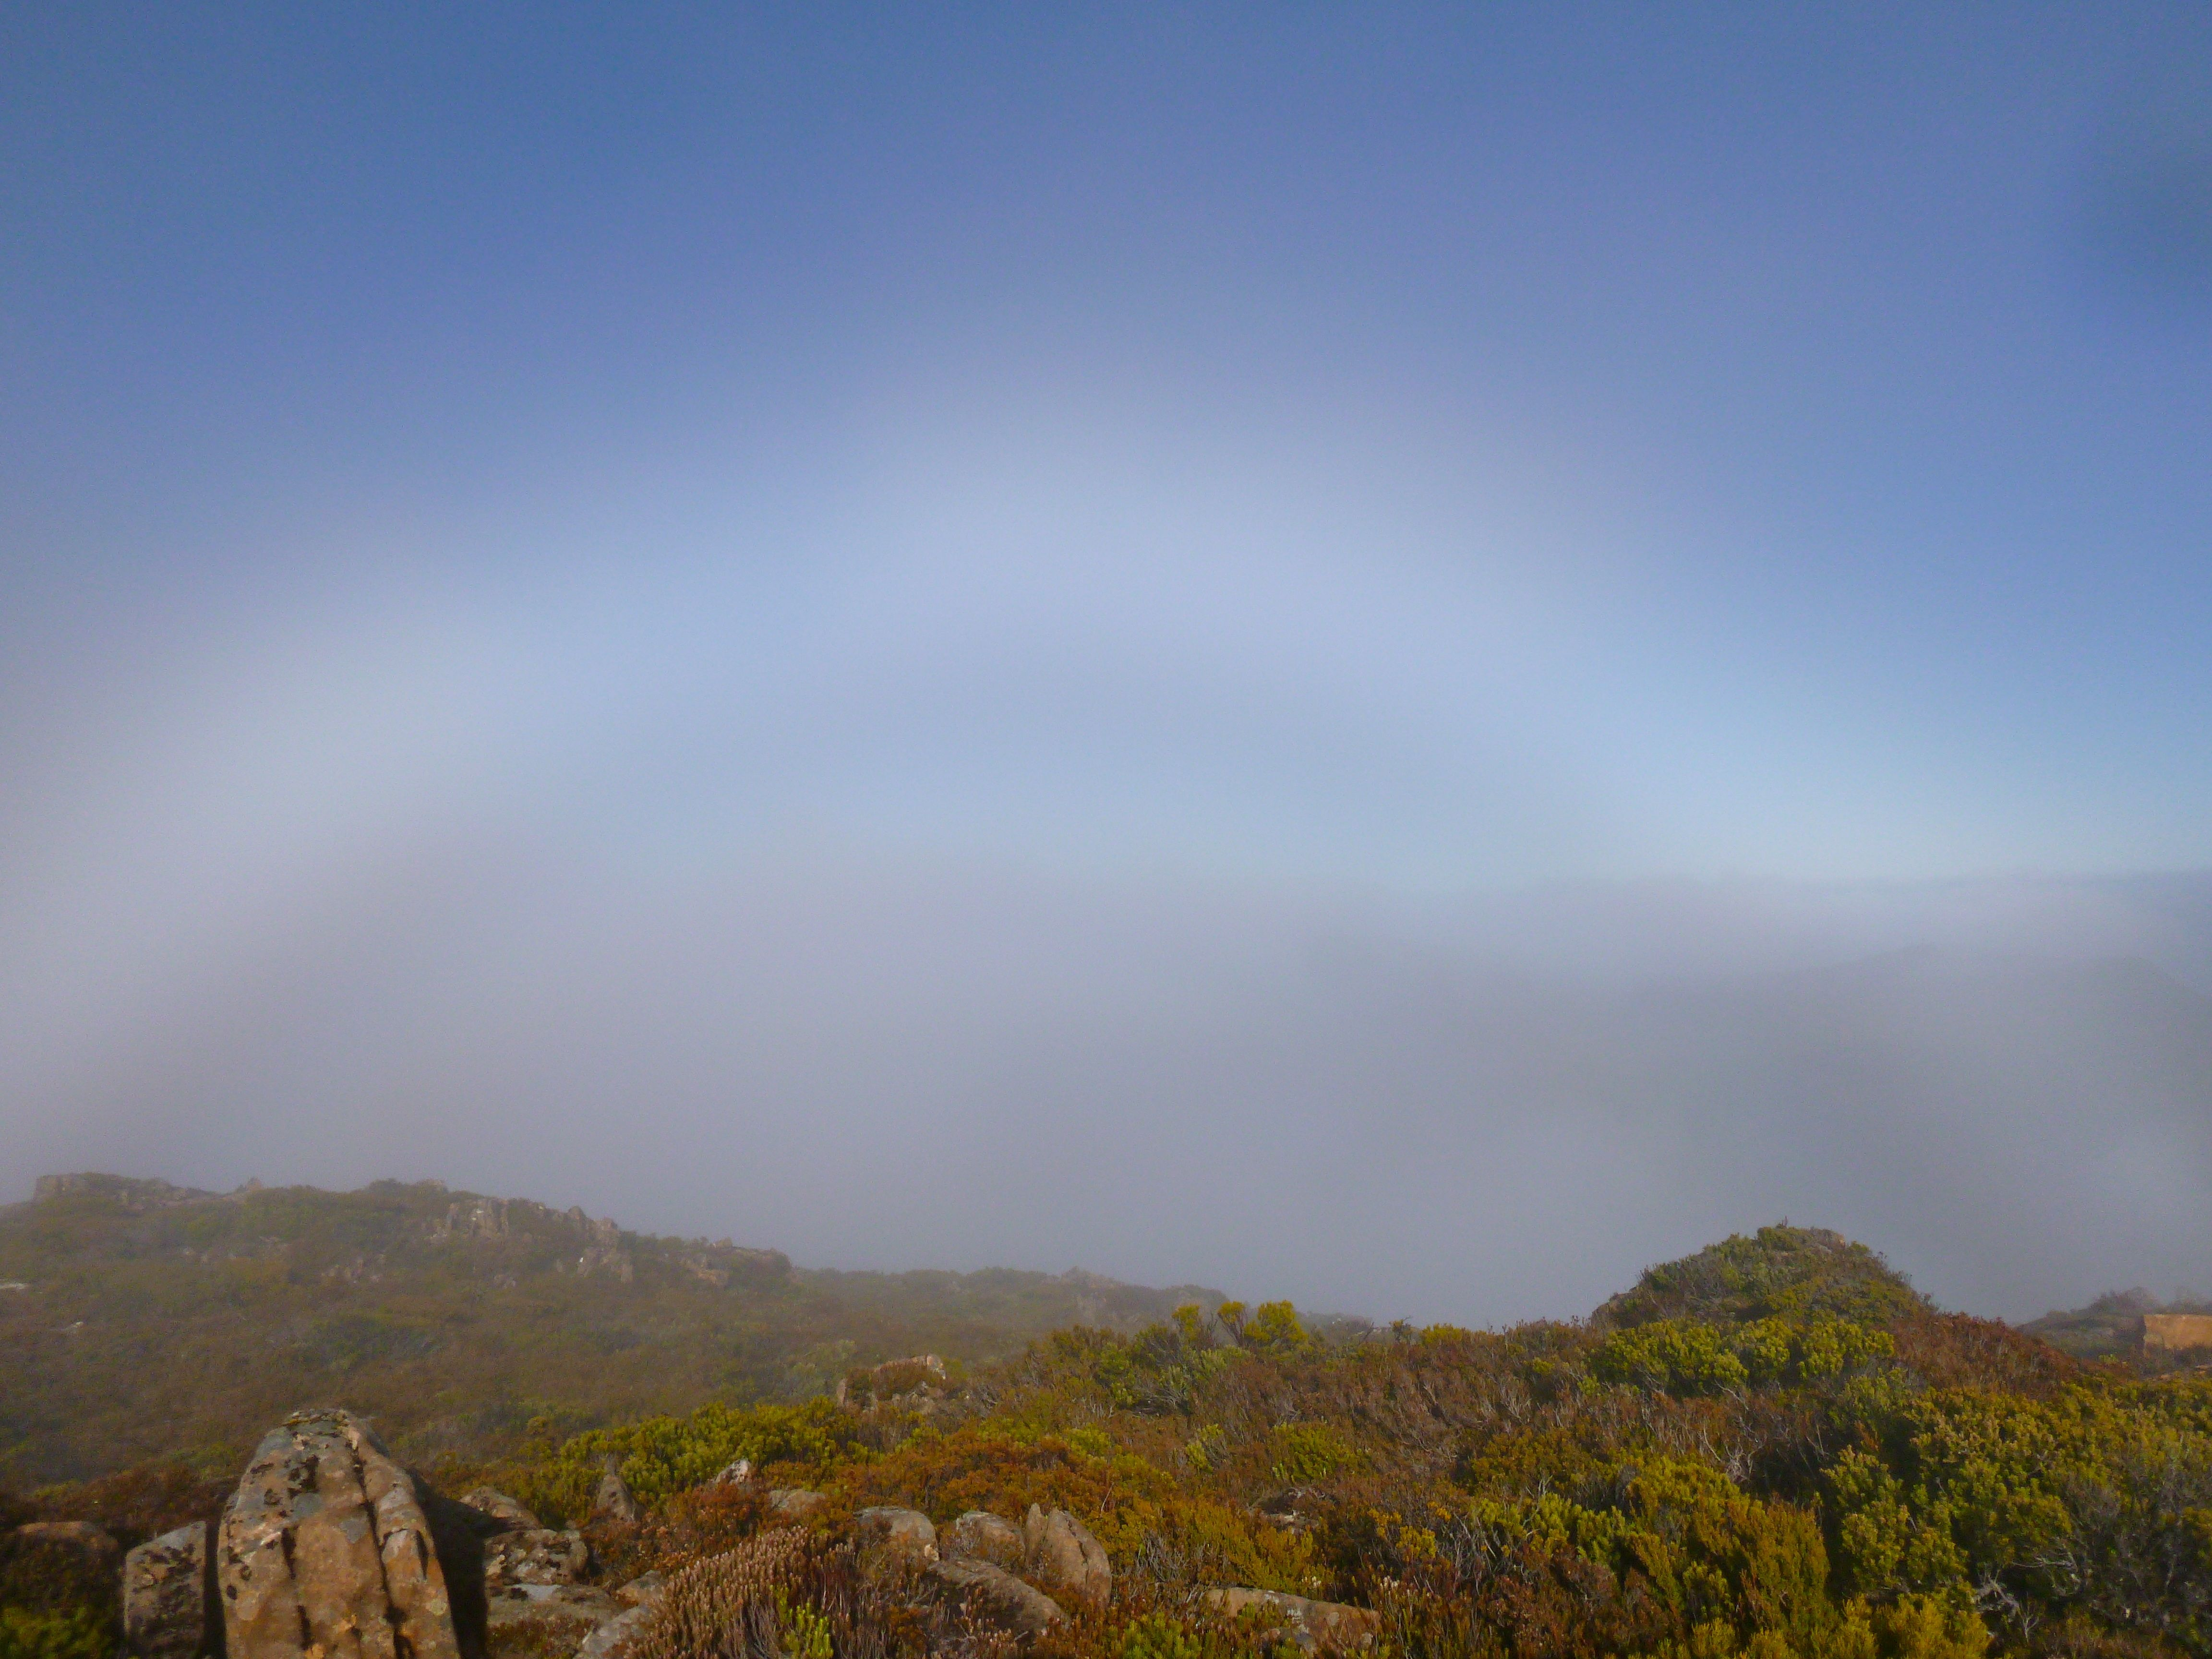 And from the summit of Pitt, I'm treated to the fogbow (thanks wikipedia, I never knew there was such a thing!)